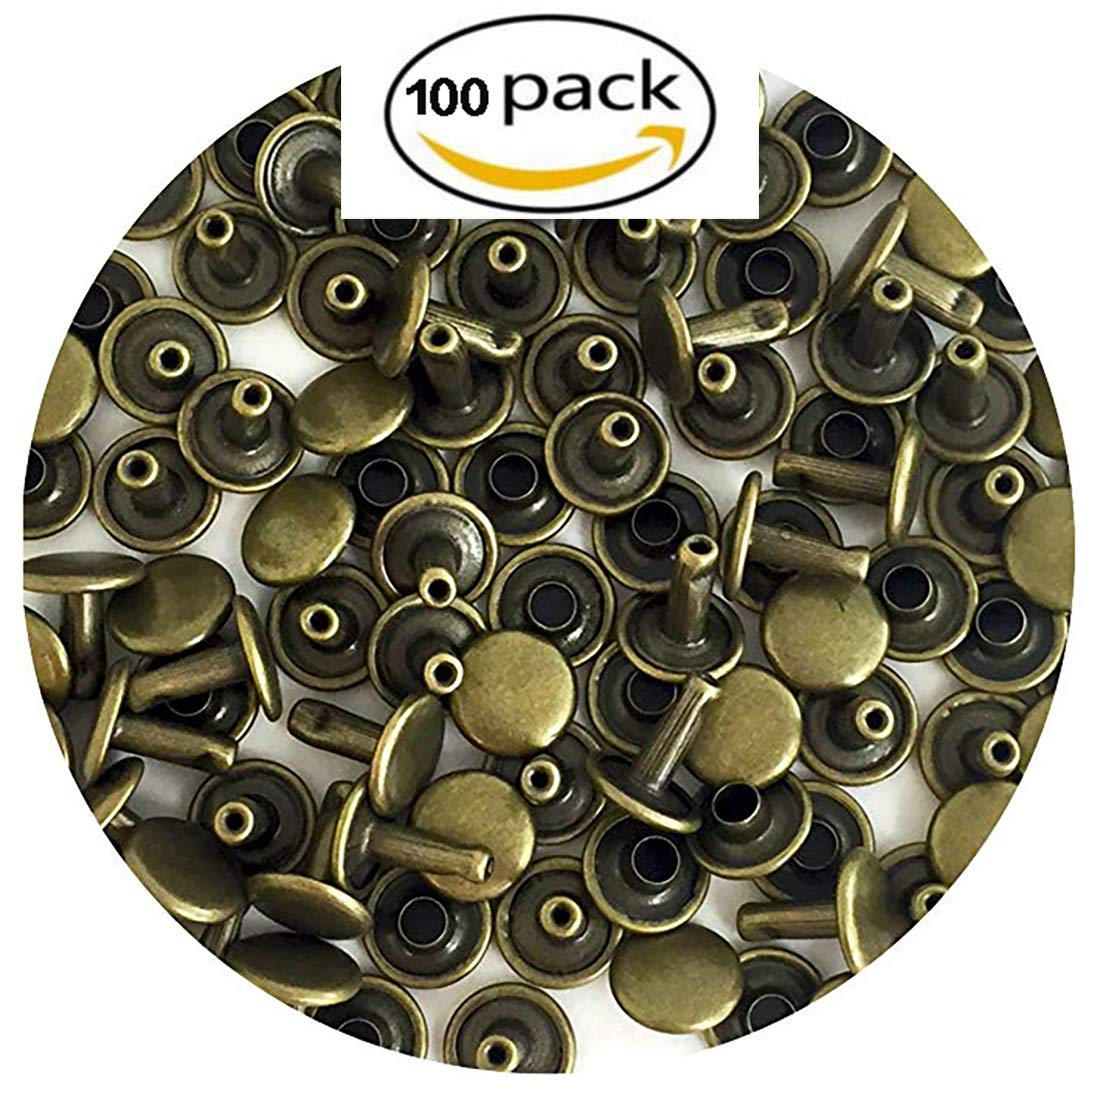 Leather Round Double Cap Rivets, Round Head Stud Rivet Leather Craft DIY (GUNMENTAL 100PK-9MM) Angels'